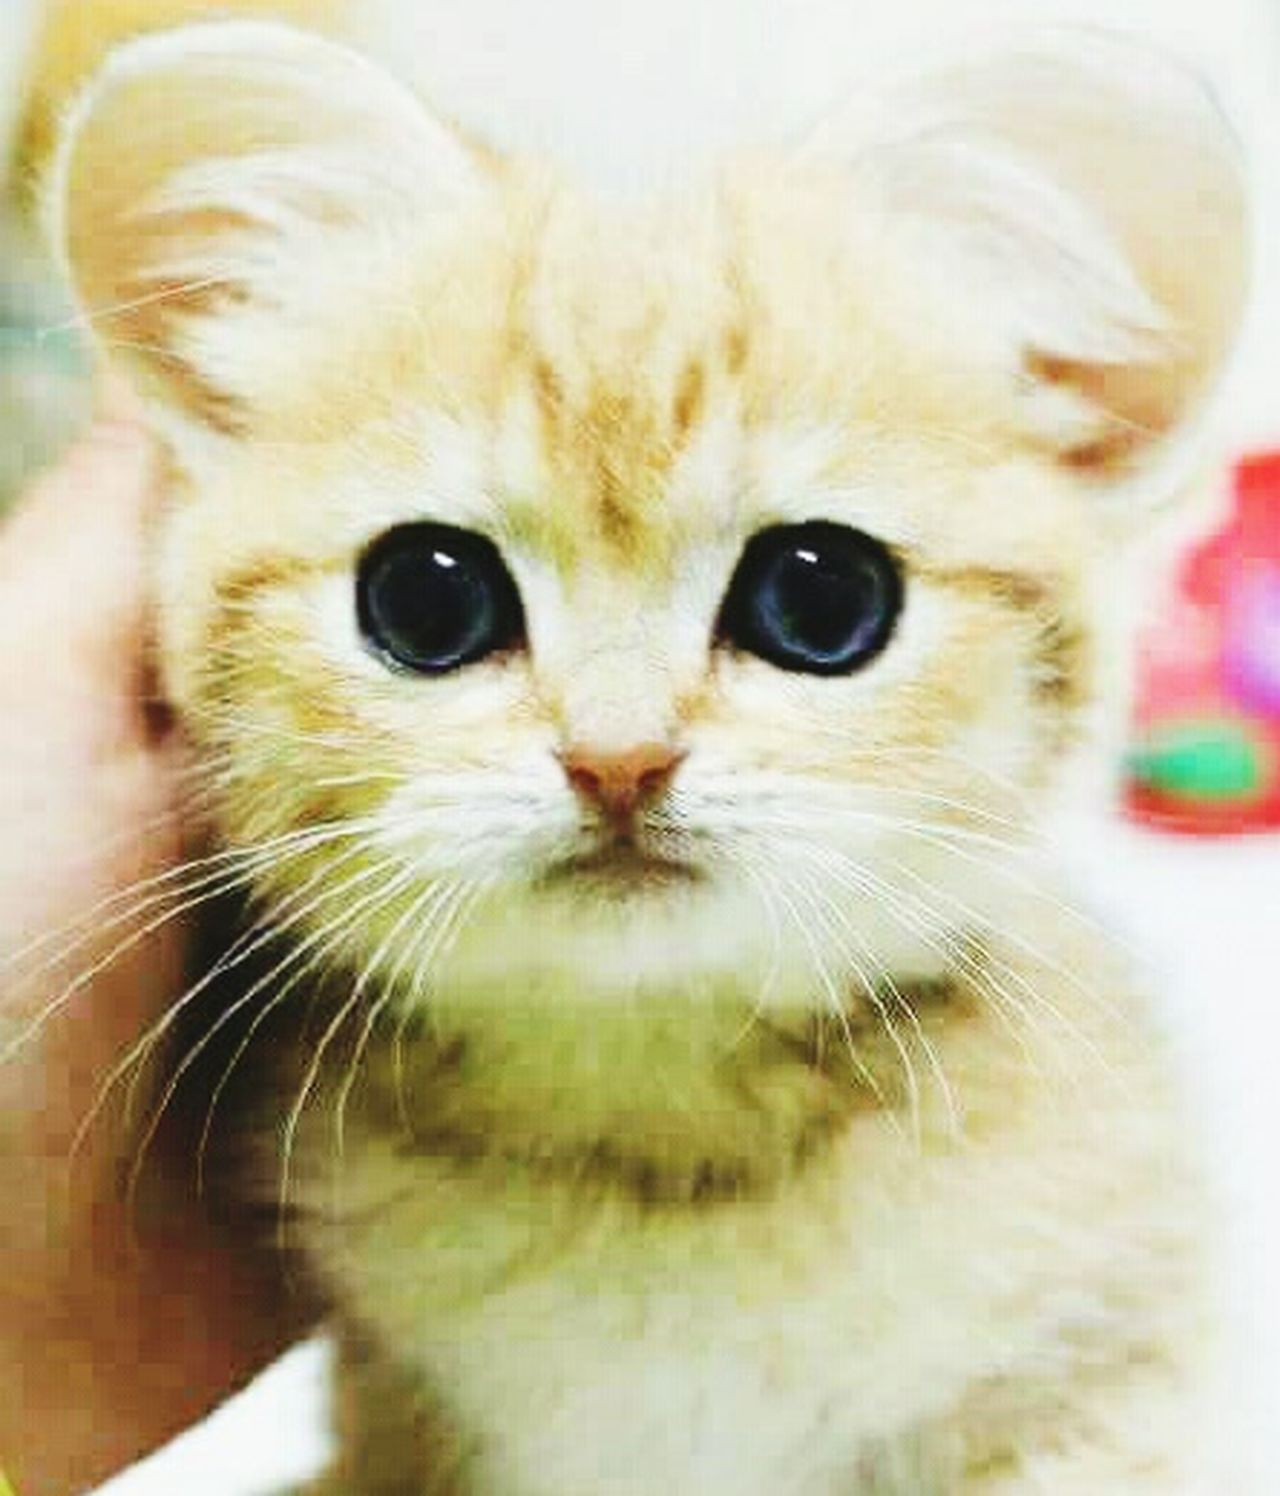 Cat♡ Cat Lovers Beautiful Animals  Uff Uniqe Looking At Camera Front View Love ♥ Check This Out Happy :) Pakistan Innocence Cute Taking Photos Love Without Boundaries Hello World Chair Love Hanging Out Hi! Beautiful Animals  Animal Photography Google Chear Enjoying Life